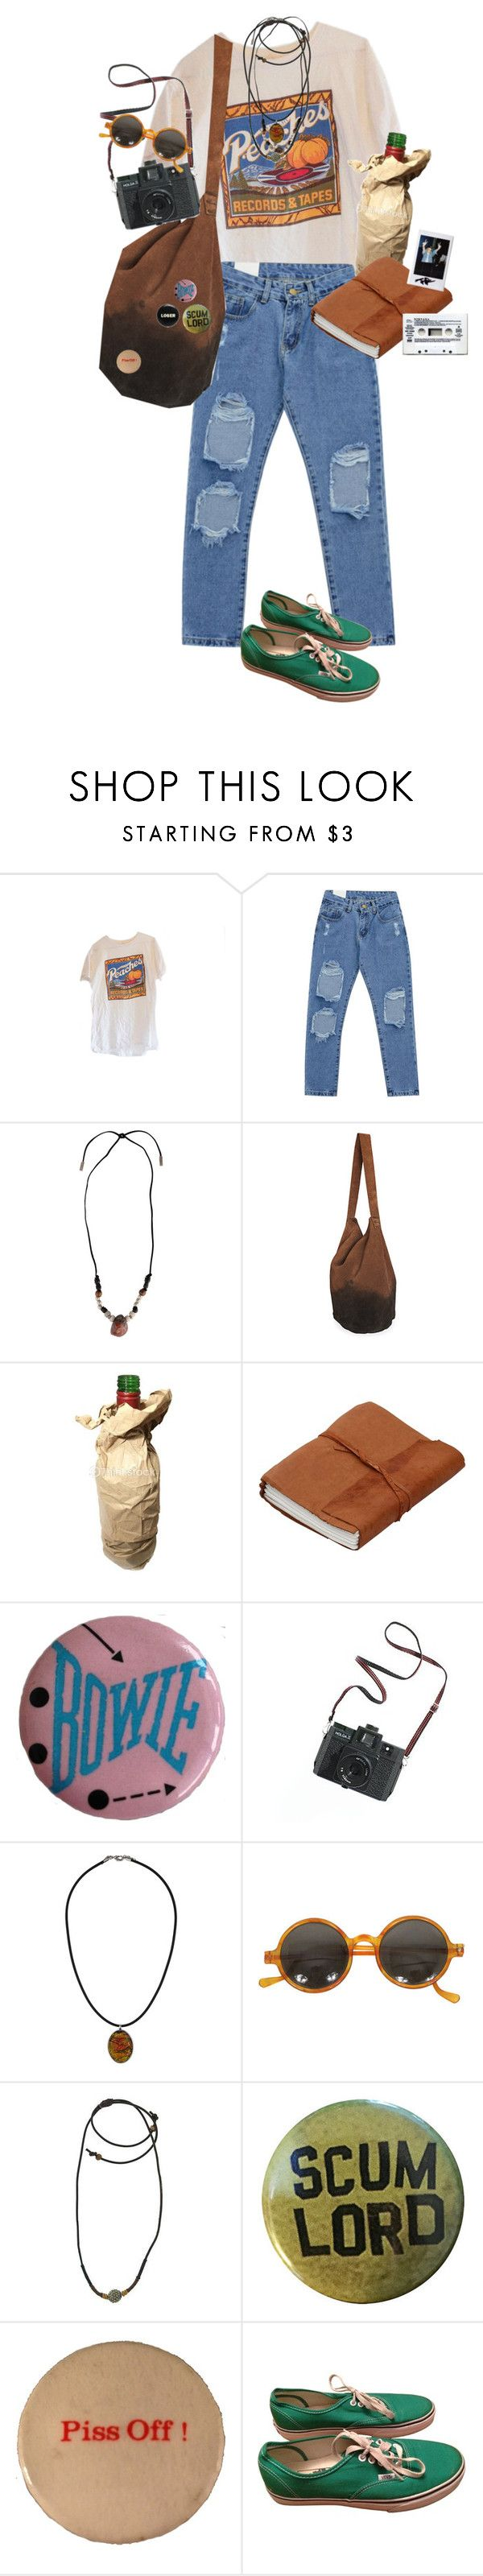 """""""peaches succ"""" by kampow ❤ liked on Polyvore featuring Chicnova Fashion, Yves Saint Laurent, Madewell, Topshop, 1928, Vans, indie, Punk, grunge and art"""